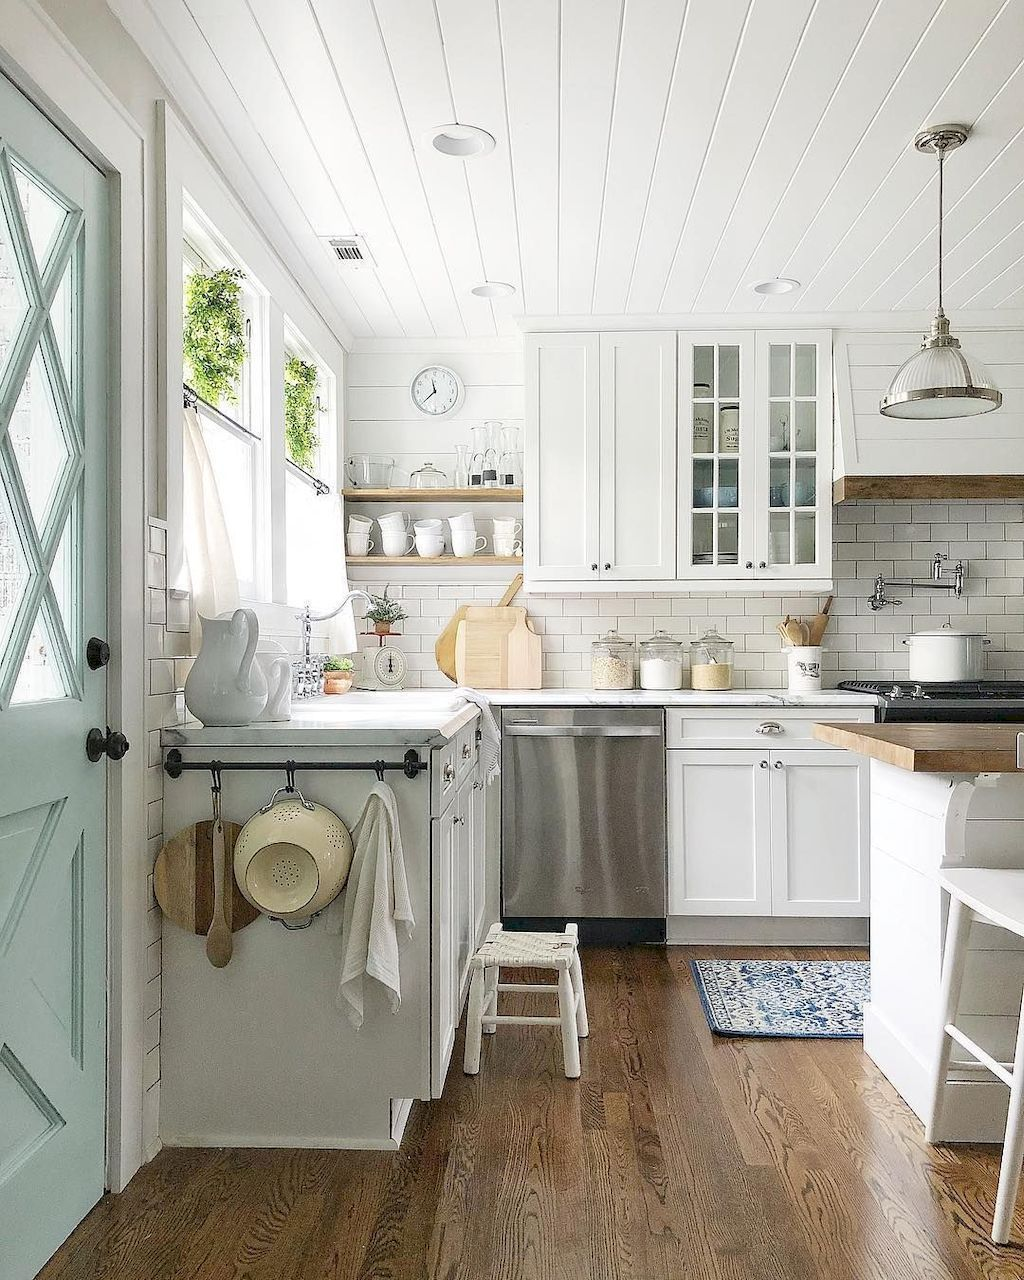 best rustic farmhouse kitchen cabinets in list (54 (avec